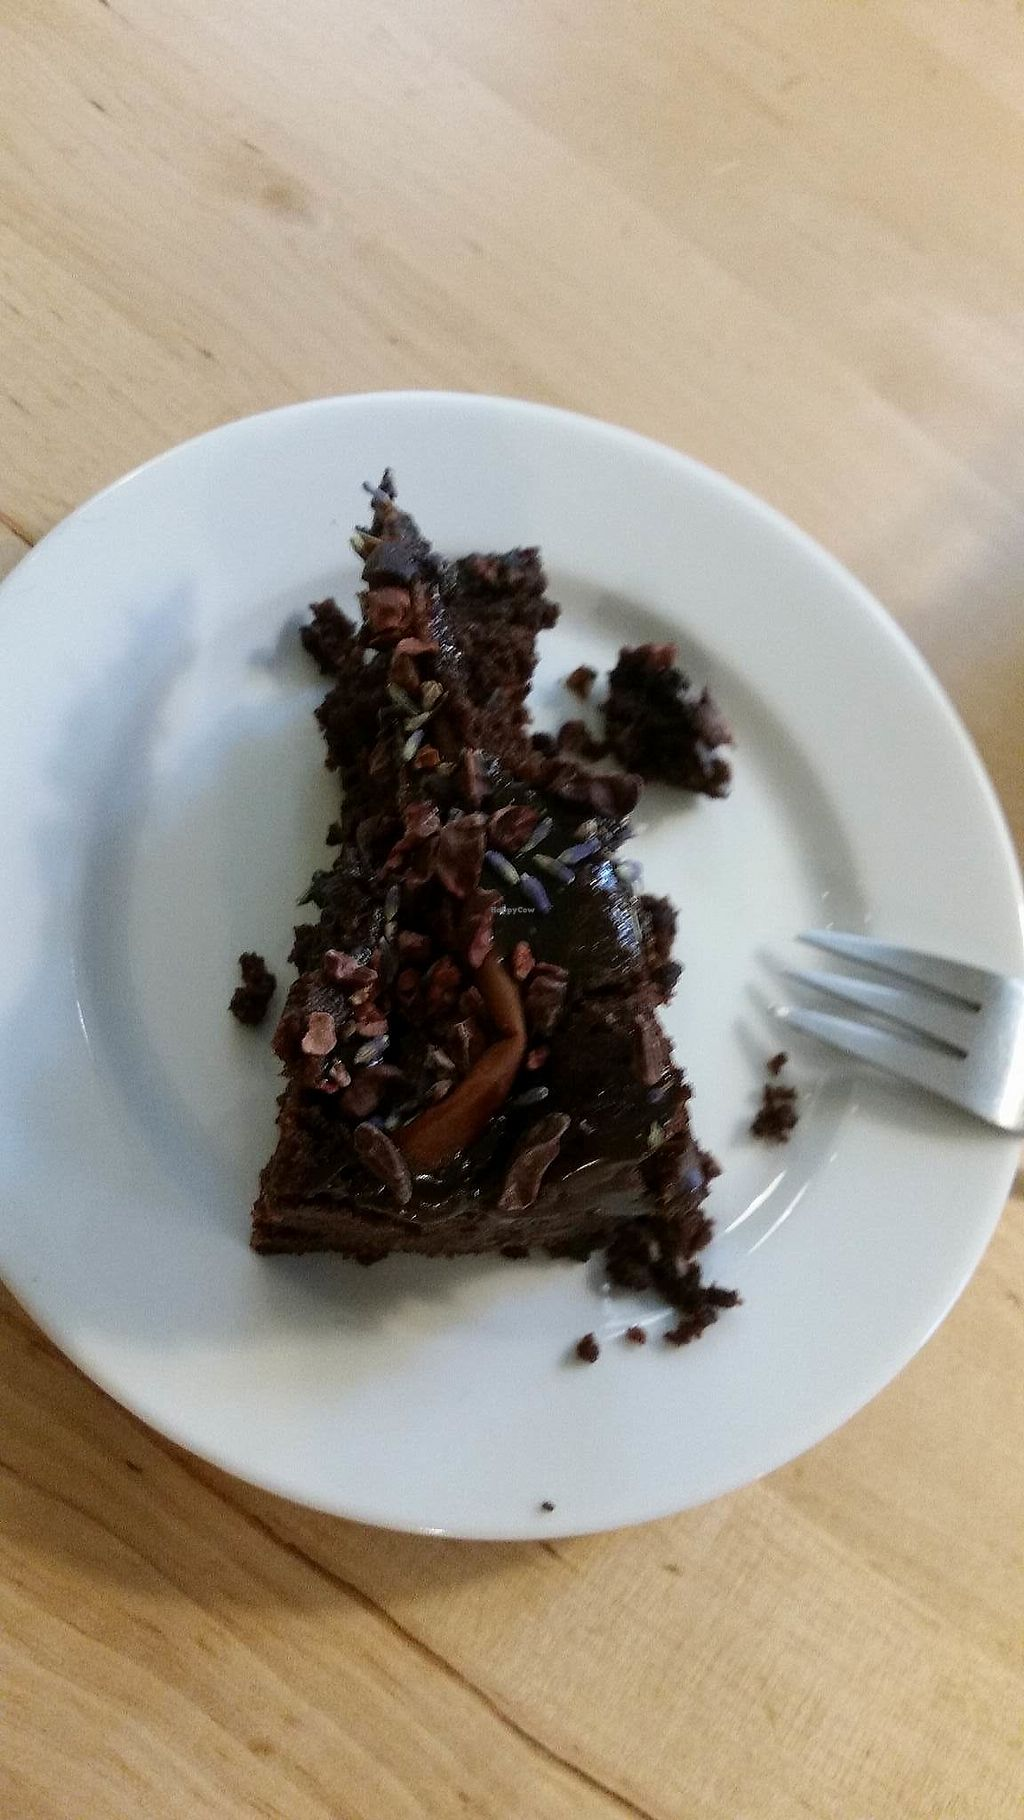 "Photo of Zyzna  by <a href=""/members/profile/FernandoMoreira"">FernandoMoreira</a> <br/>chocolate pear cake <br/> January 17, 2018  - <a href='/contact/abuse/image/58959/347600'>Report</a>"